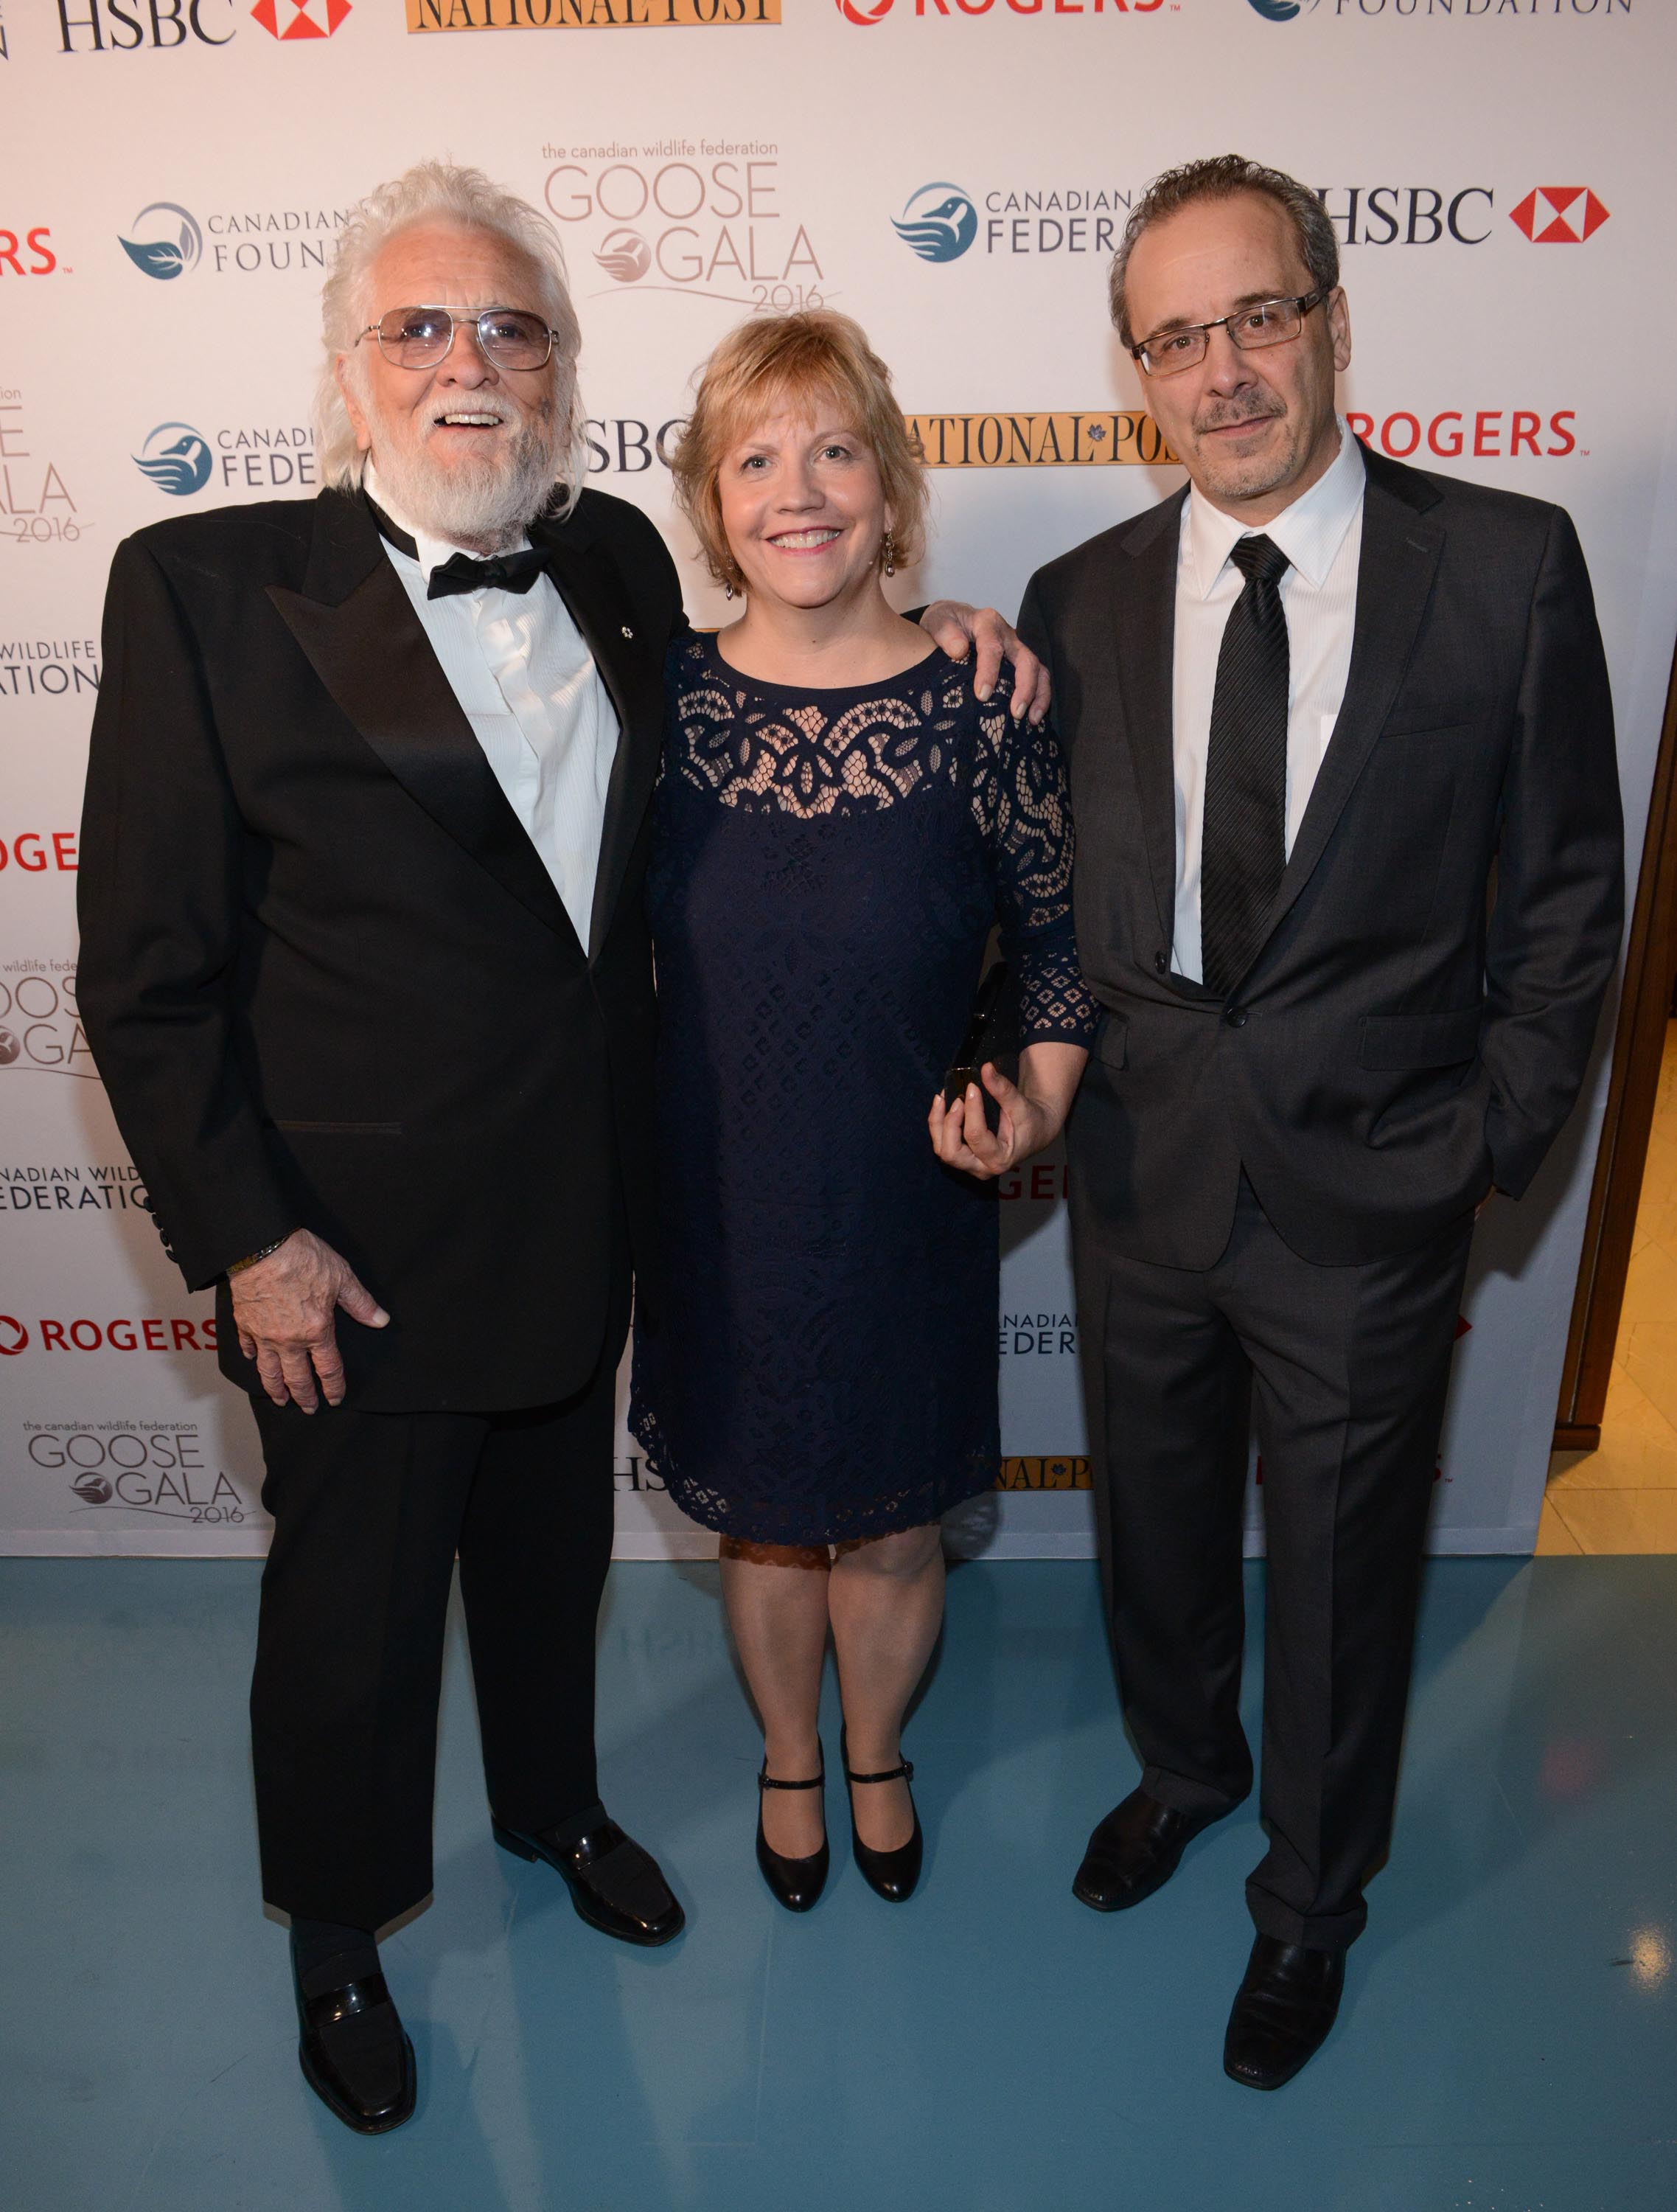 Ronnie Hawkins with Bobbi Bates and Acting Canadian Wildlife Federation CEO, Rick Bates